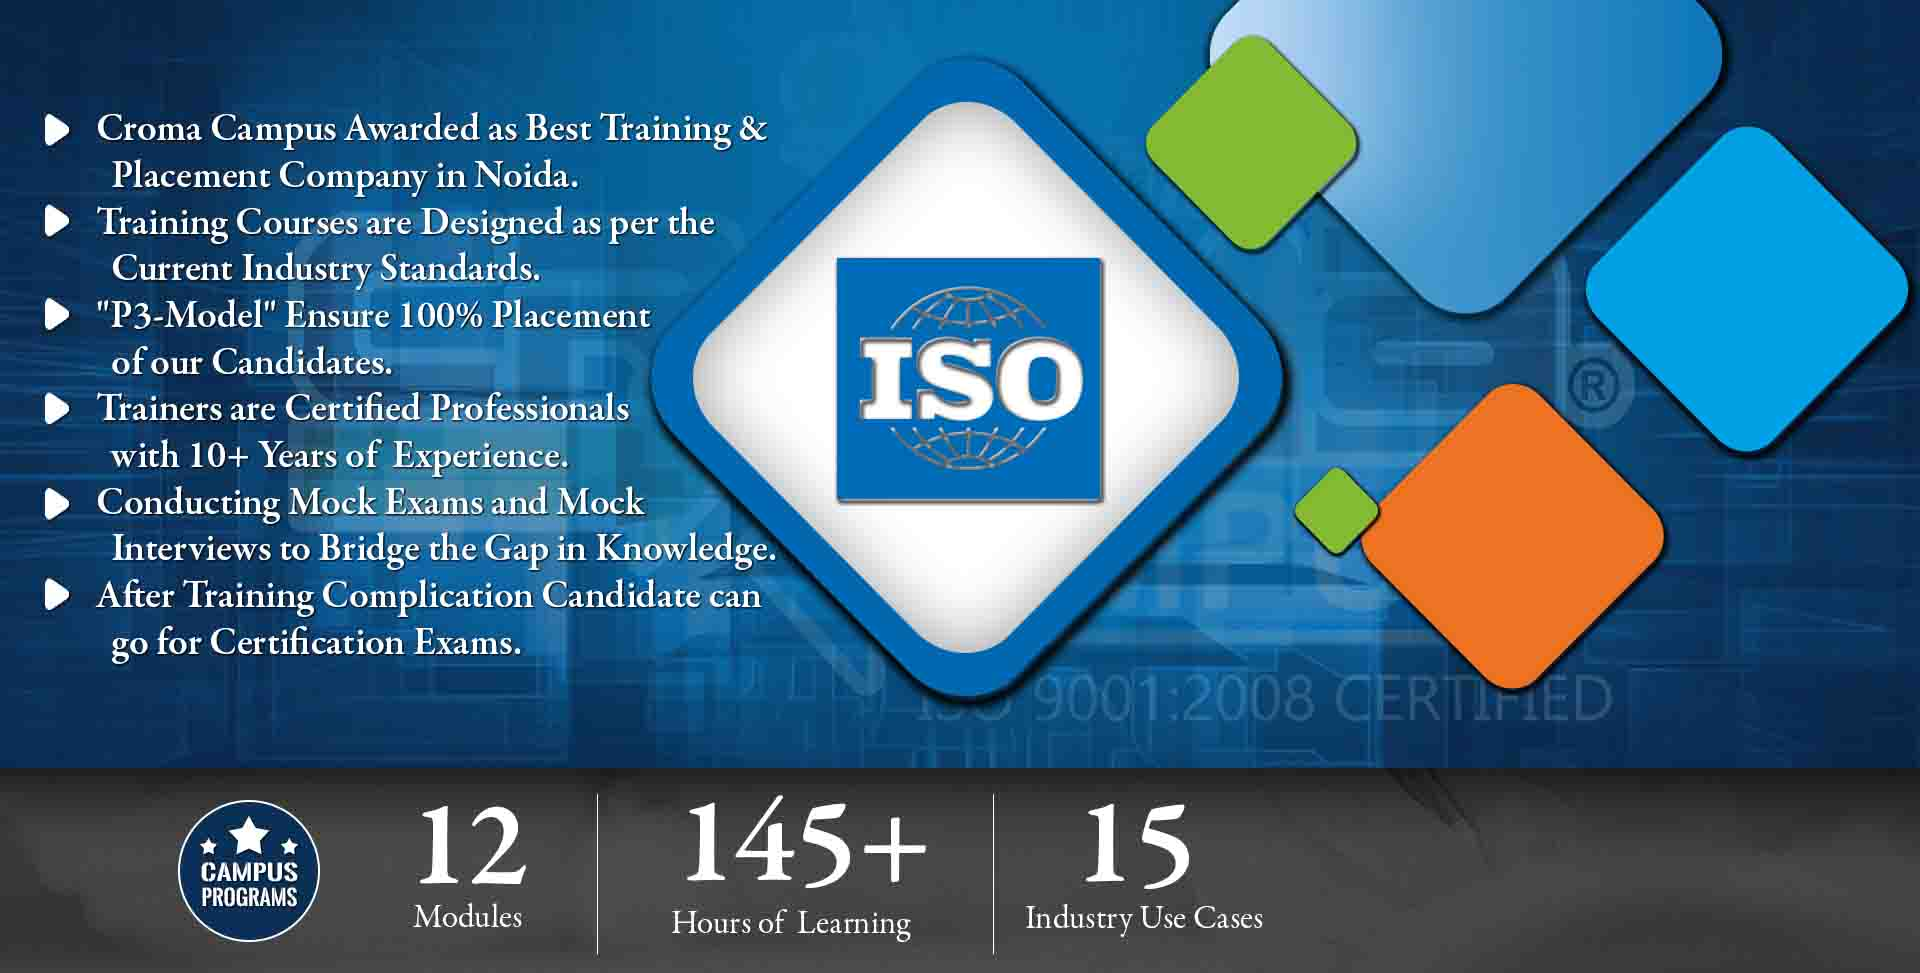 ISO Training in Noida- Croma Campus